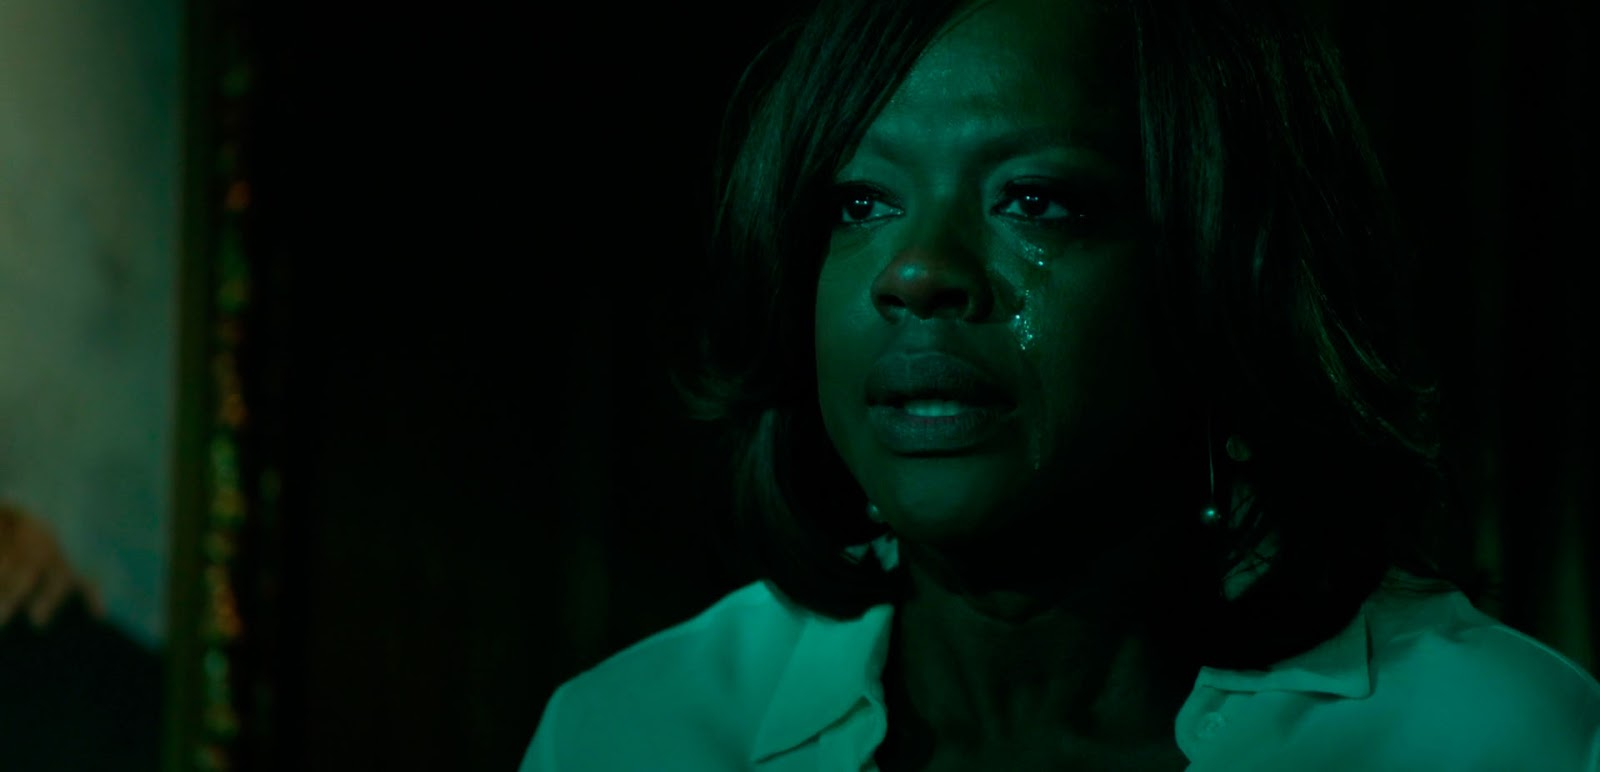 How to Get Away with Murder 2x09 What Did We Do?